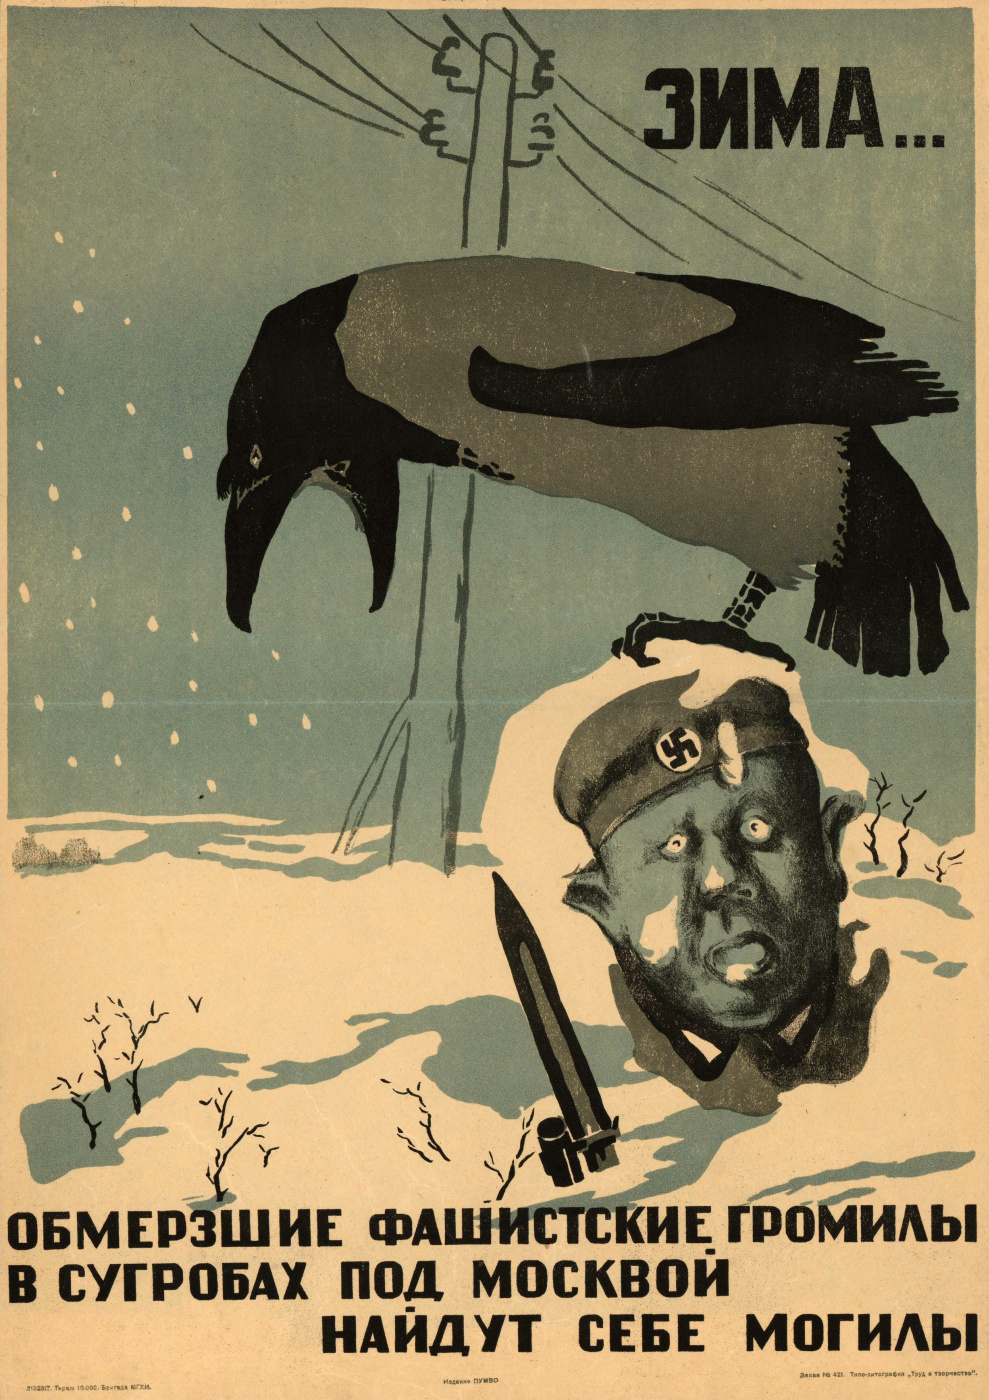 Unknown artist. Winter... Frost the fascist thugs in the snow near Moscow will find their own graves